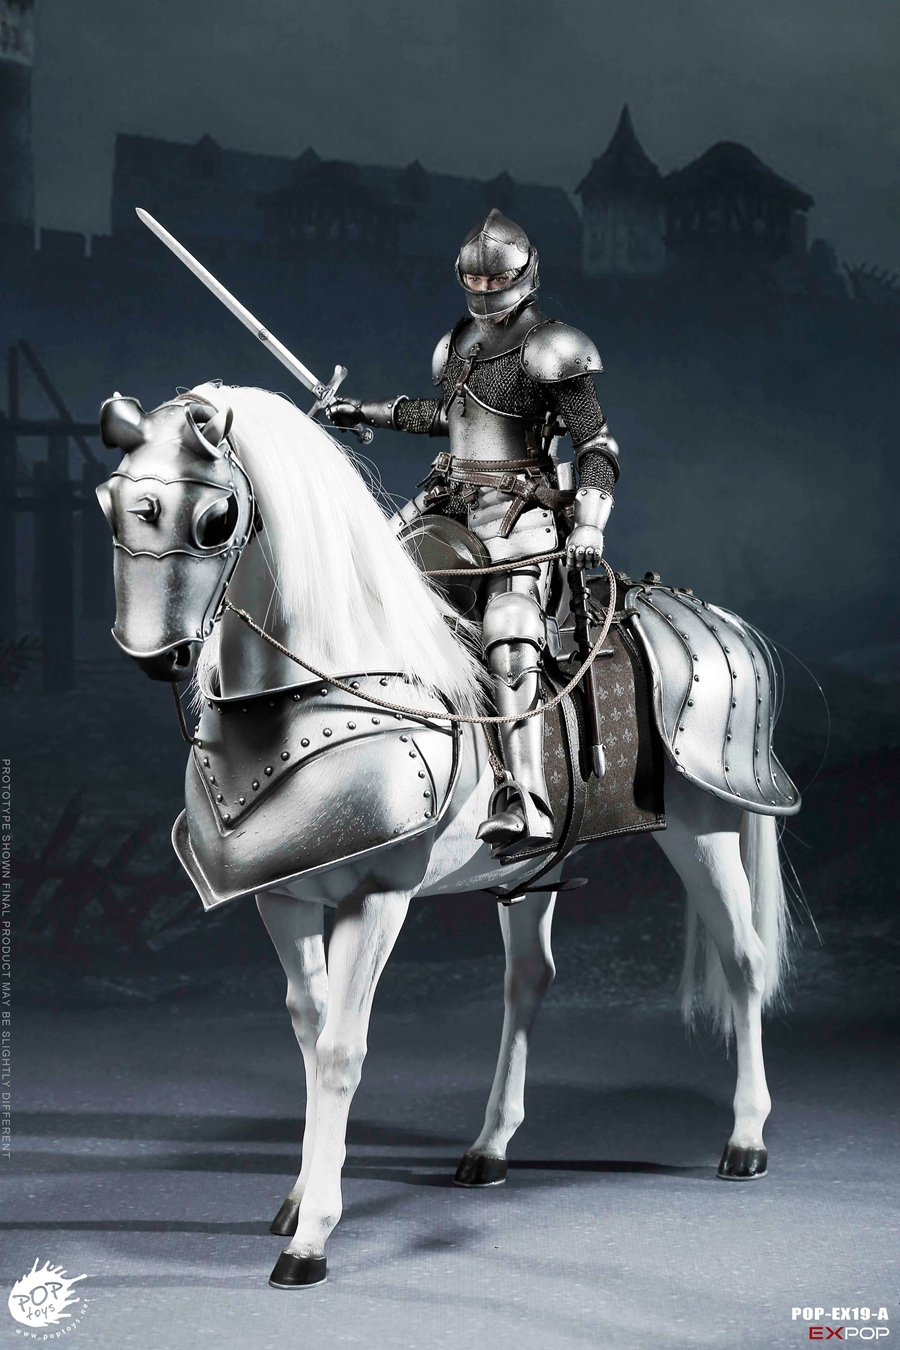 NEW PRODUCT: POPTOYS New Products: 1/6 St. Knights - Assault Edition & Triumph Edition & Iron Armor (POP-EX19 ABC) 16391910